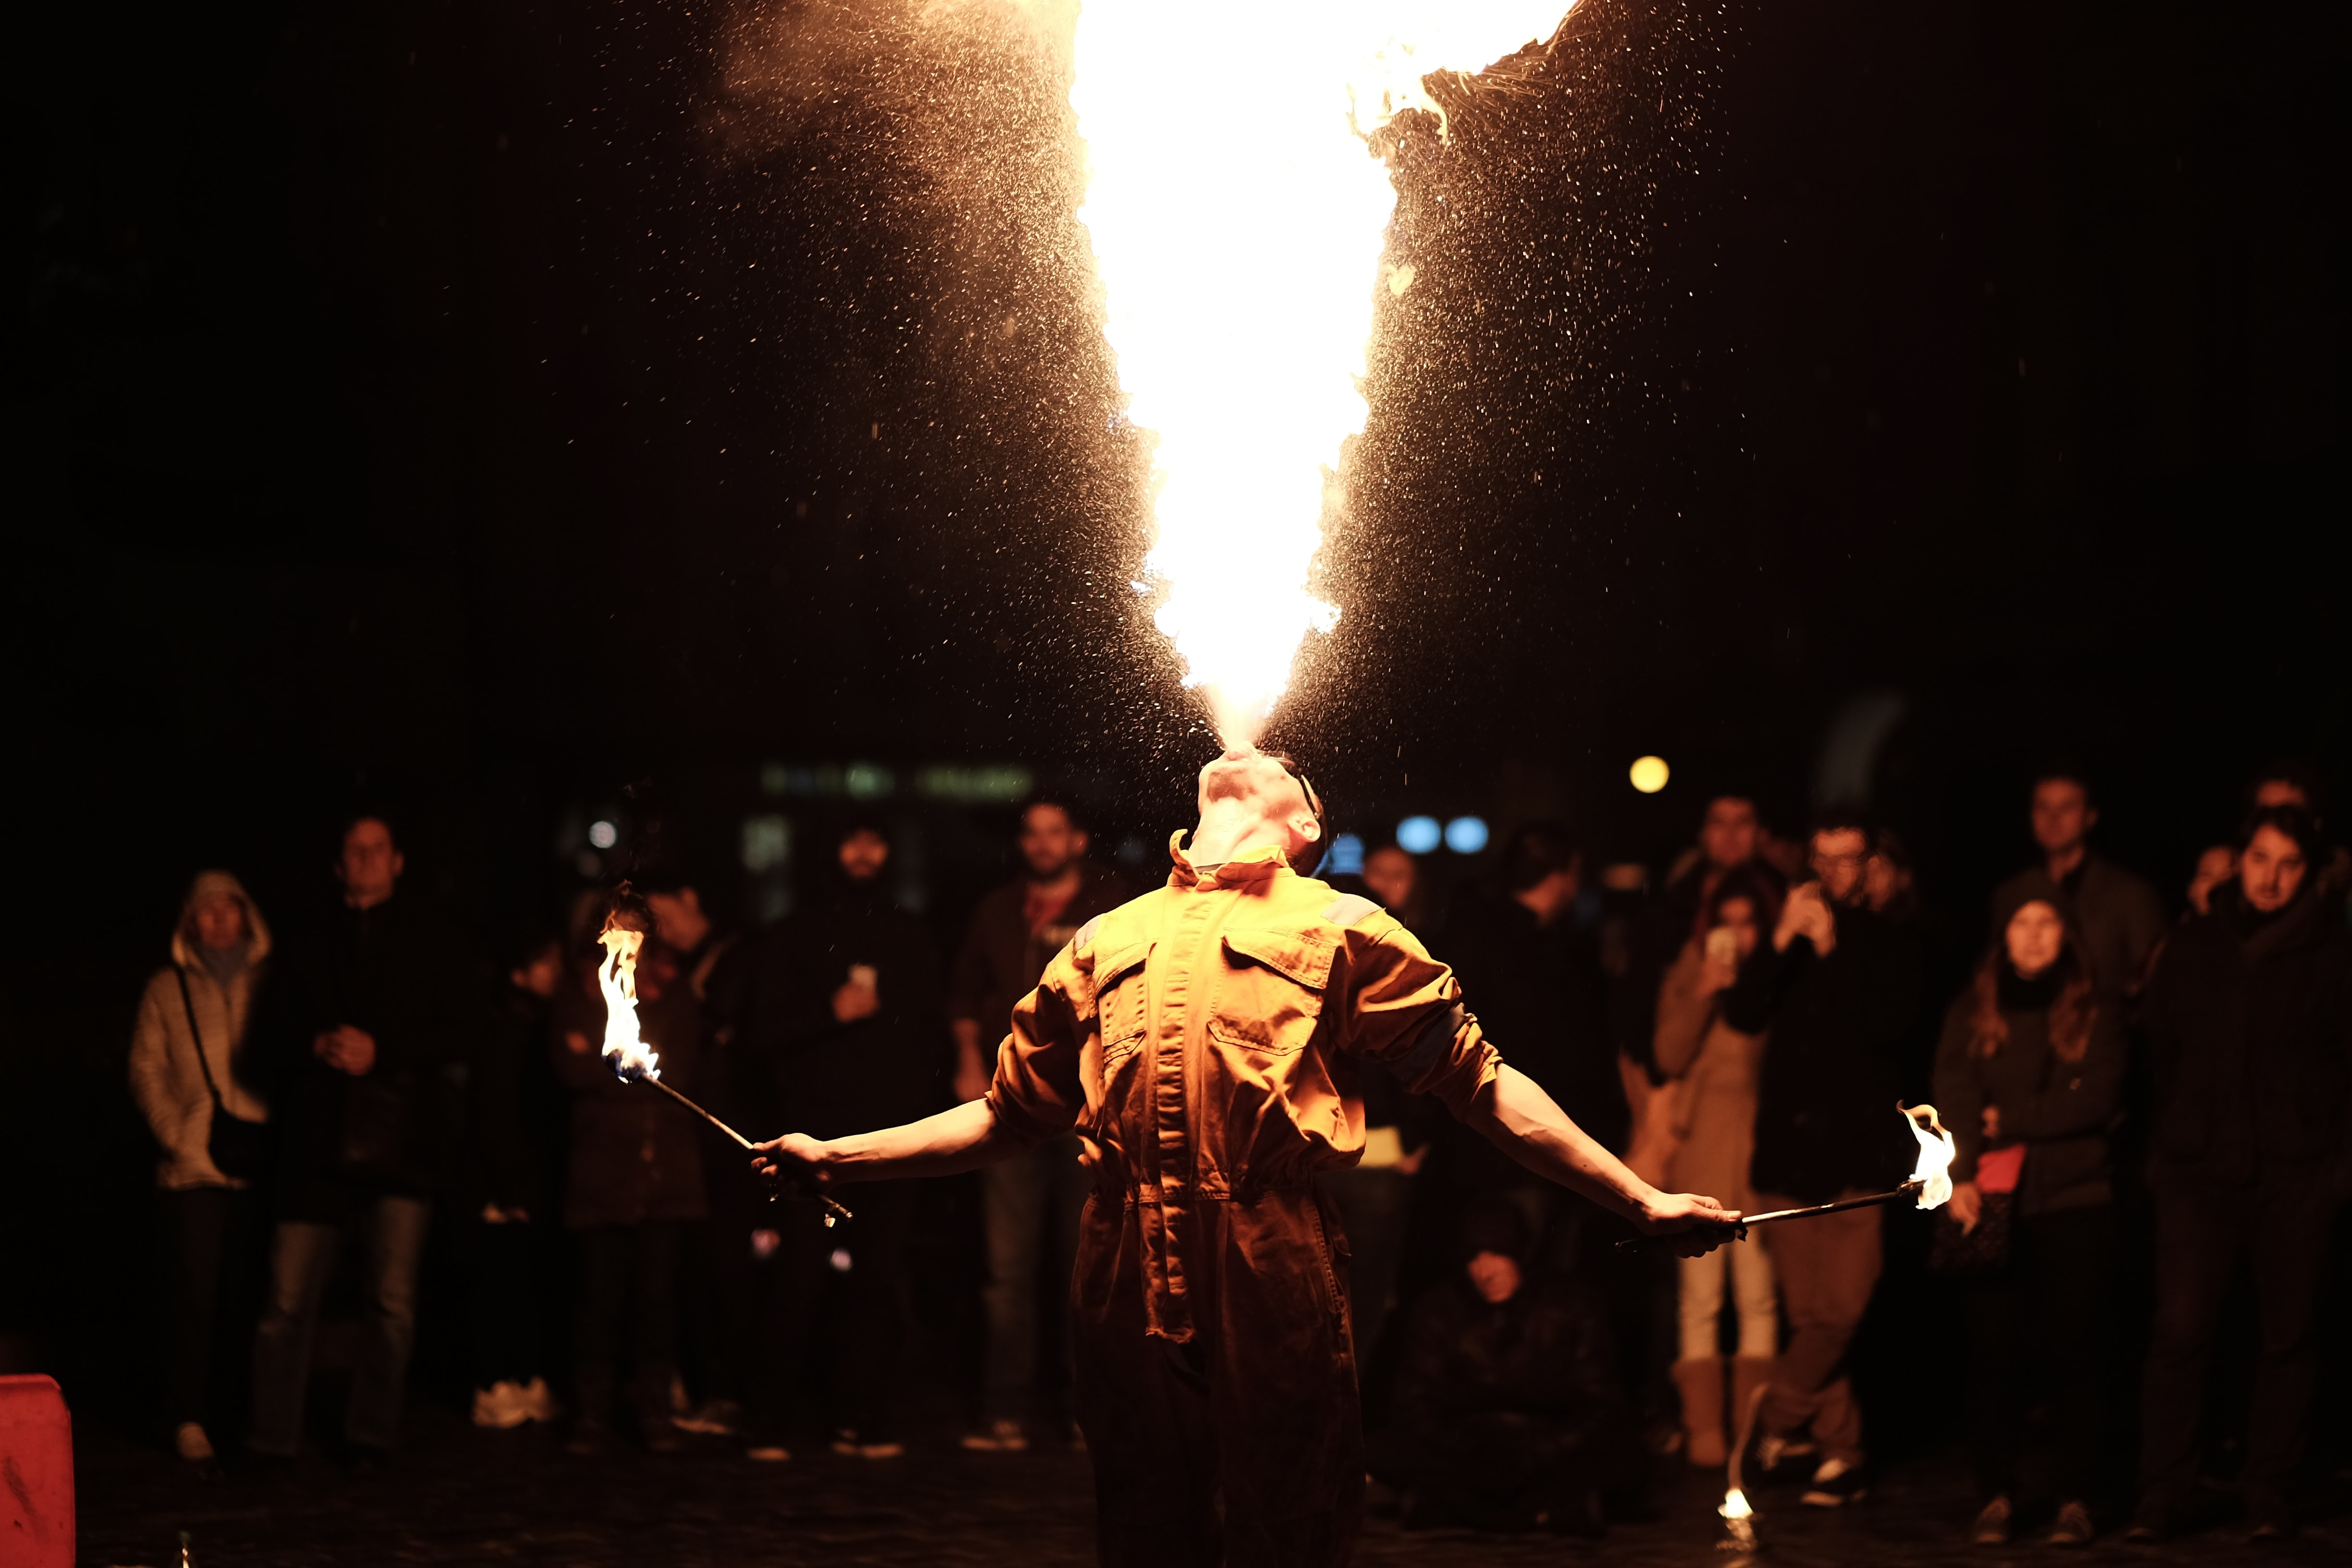 Man holding torch and blowing fire out of mouth with people standing behind him